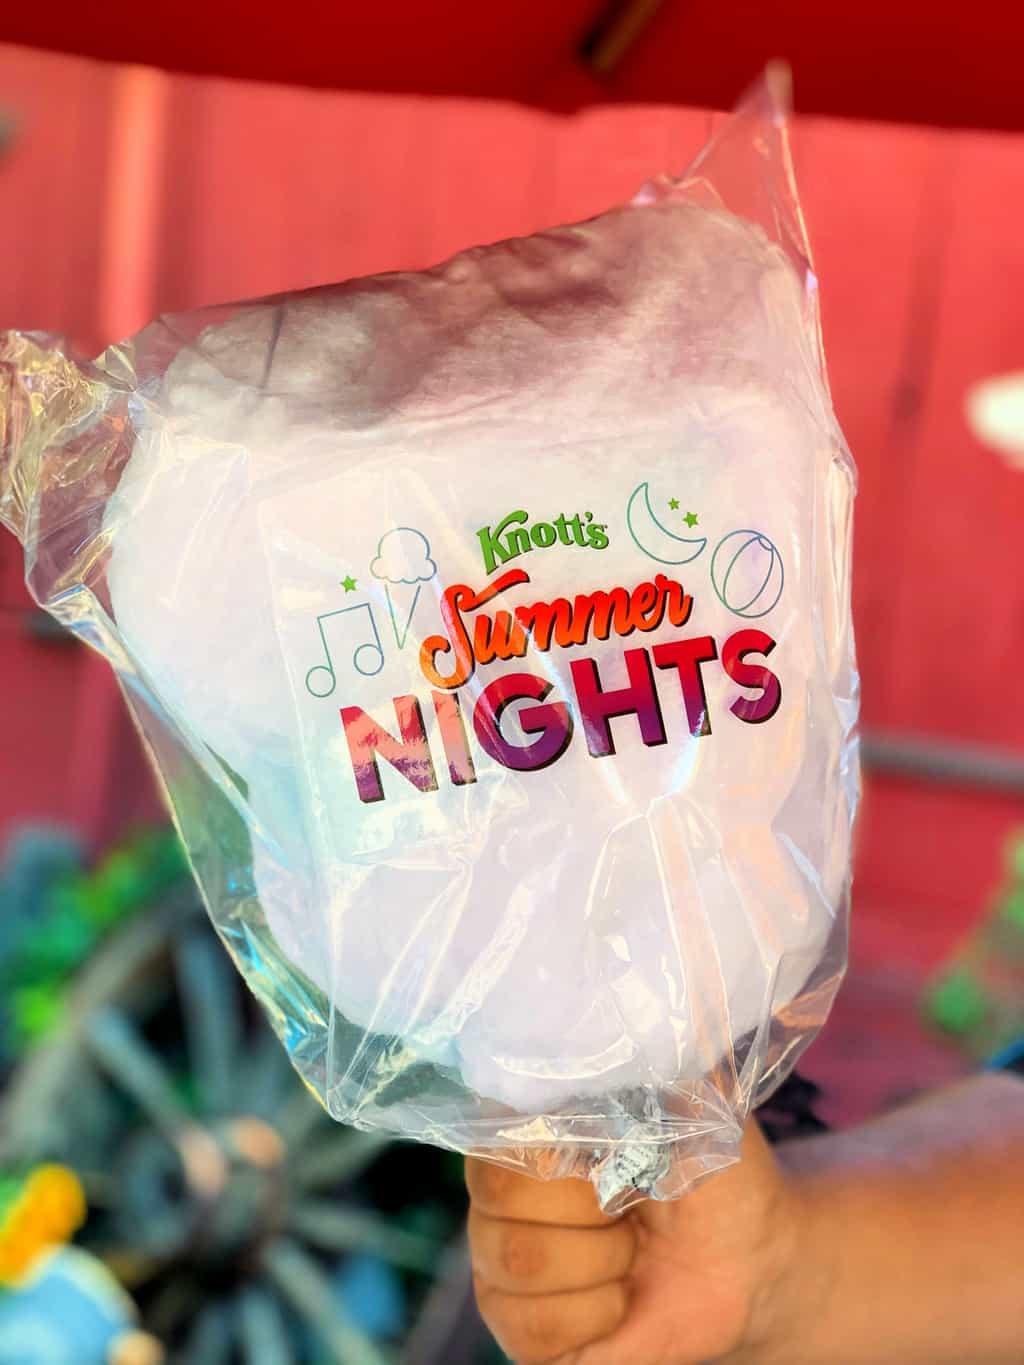 Cotton Candy at Knott's Summer Nights in California